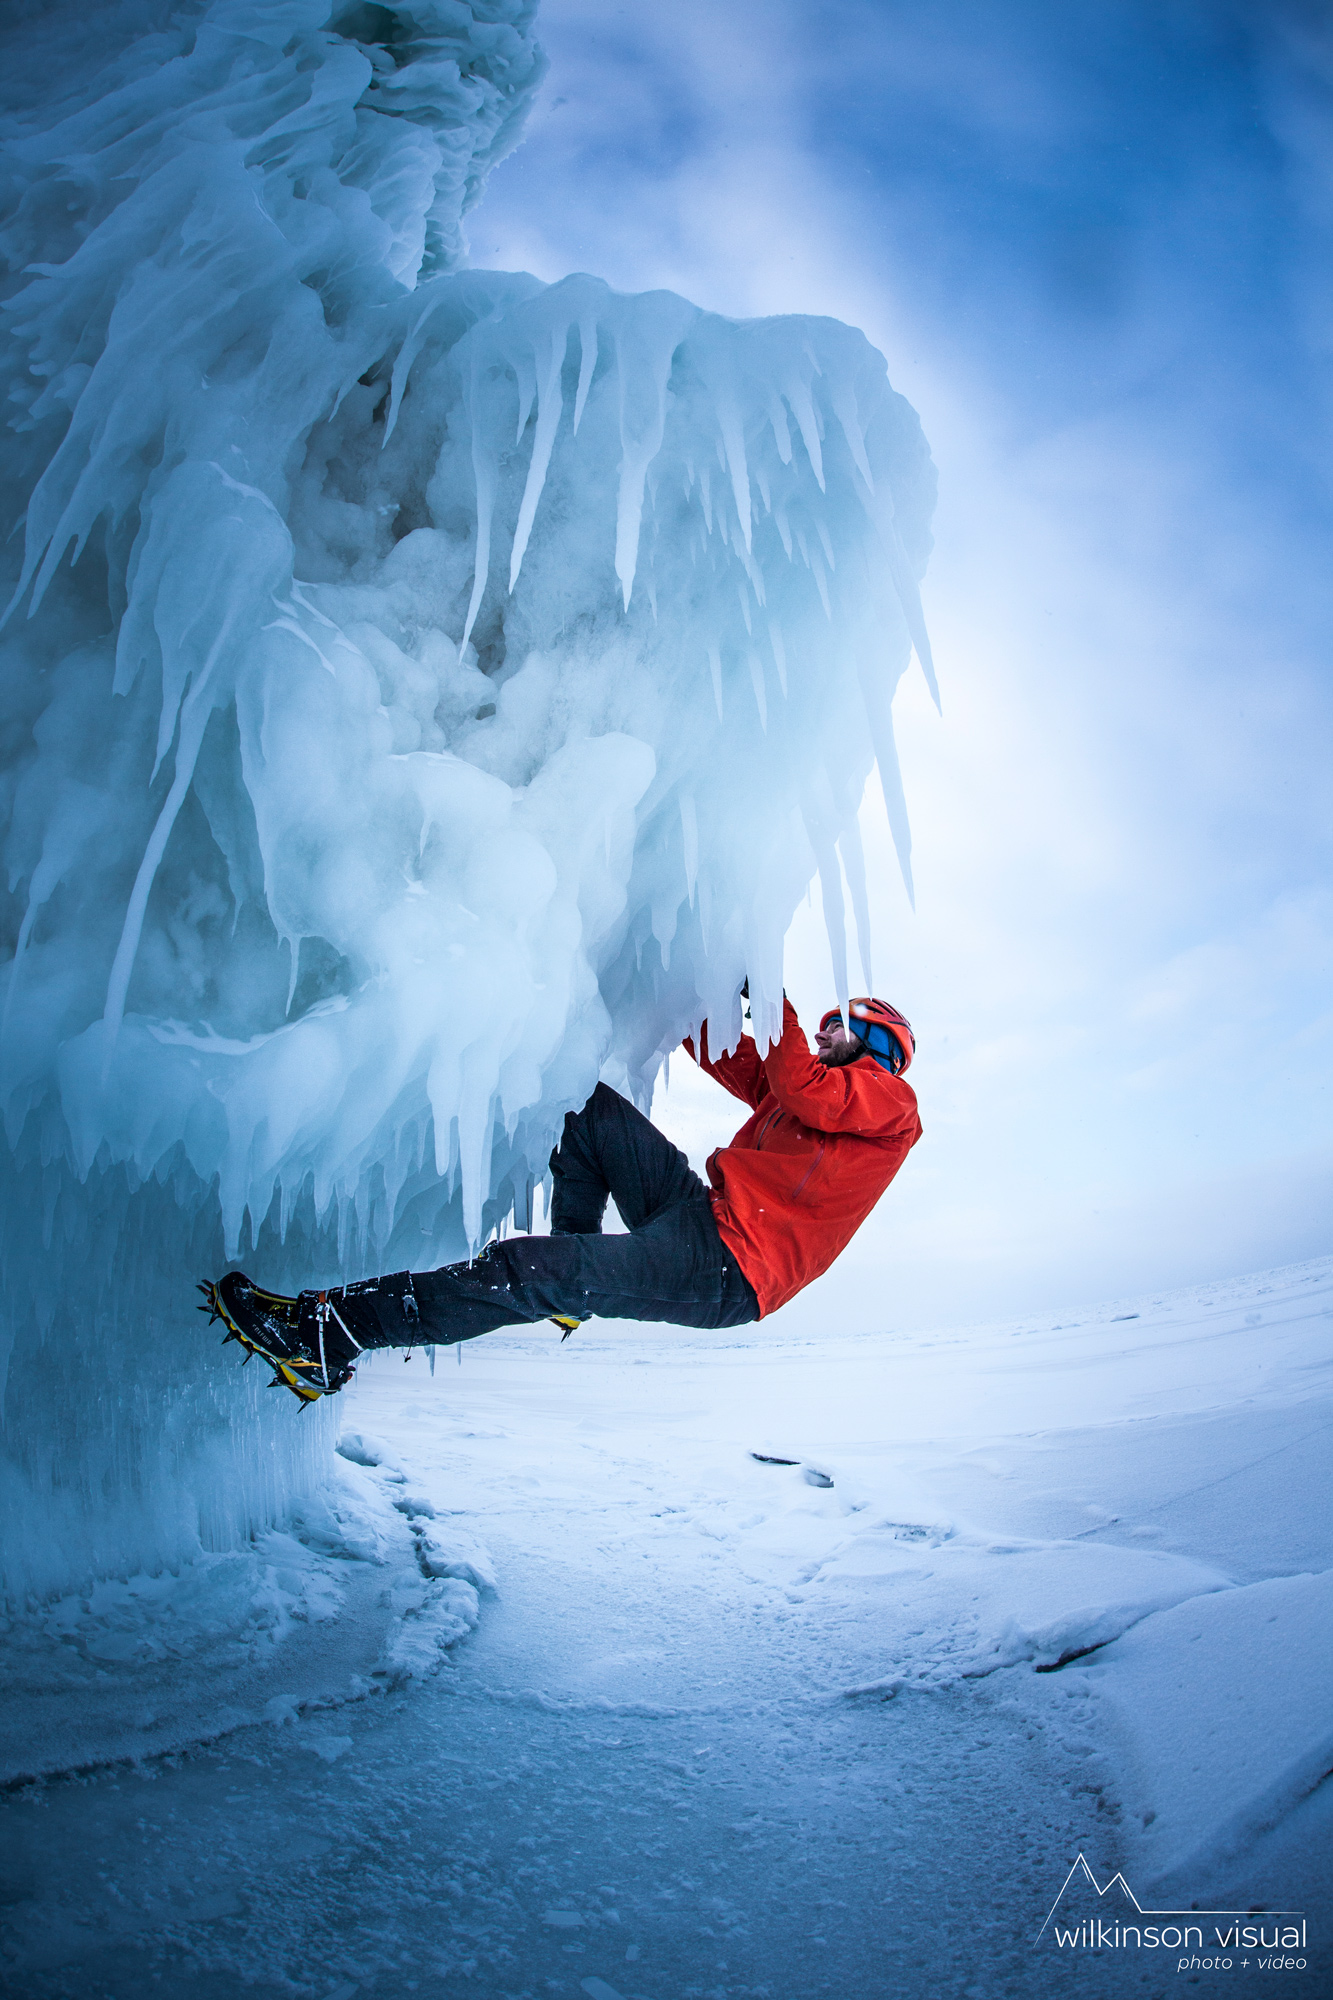 Nic Dobbs plays around on ice boulders in Northern Michigan.